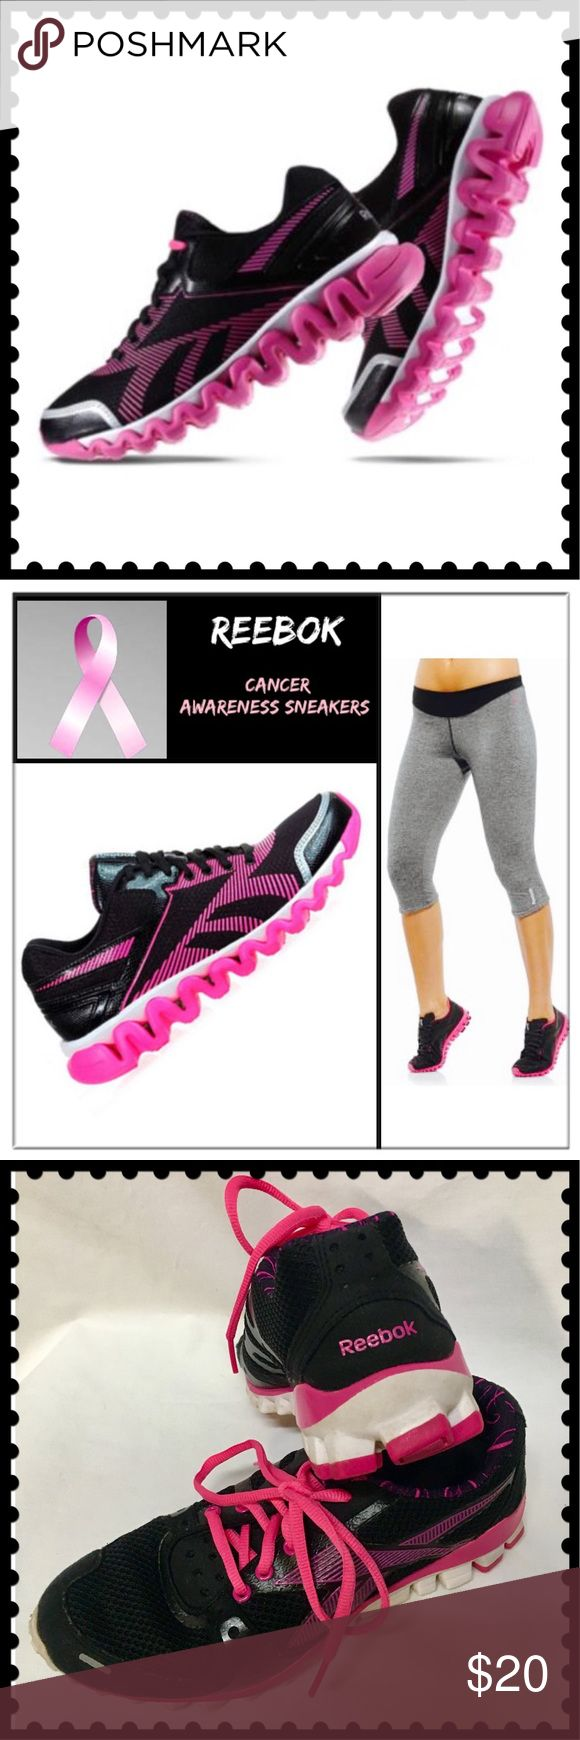 """🆕REEBOK Cancer Awareness Pink ribbon running 👟👟 REEBOK Cancer Awareness Pink ribbon running shoes with """"Get your Pink on"""" stamped inside. Black with pink cancer awareness ribbons & white reflective areas in front & back. Sz 7.5 in EUC. Only wear is lettering on insoles is slightly faded/worn off & they are freshly washed with new pink ties. Excellent lightweight running shoe. All photos are actual shoes except for cover & 2nd with model. Reasonable offers welcome. A portion of this sale…"""